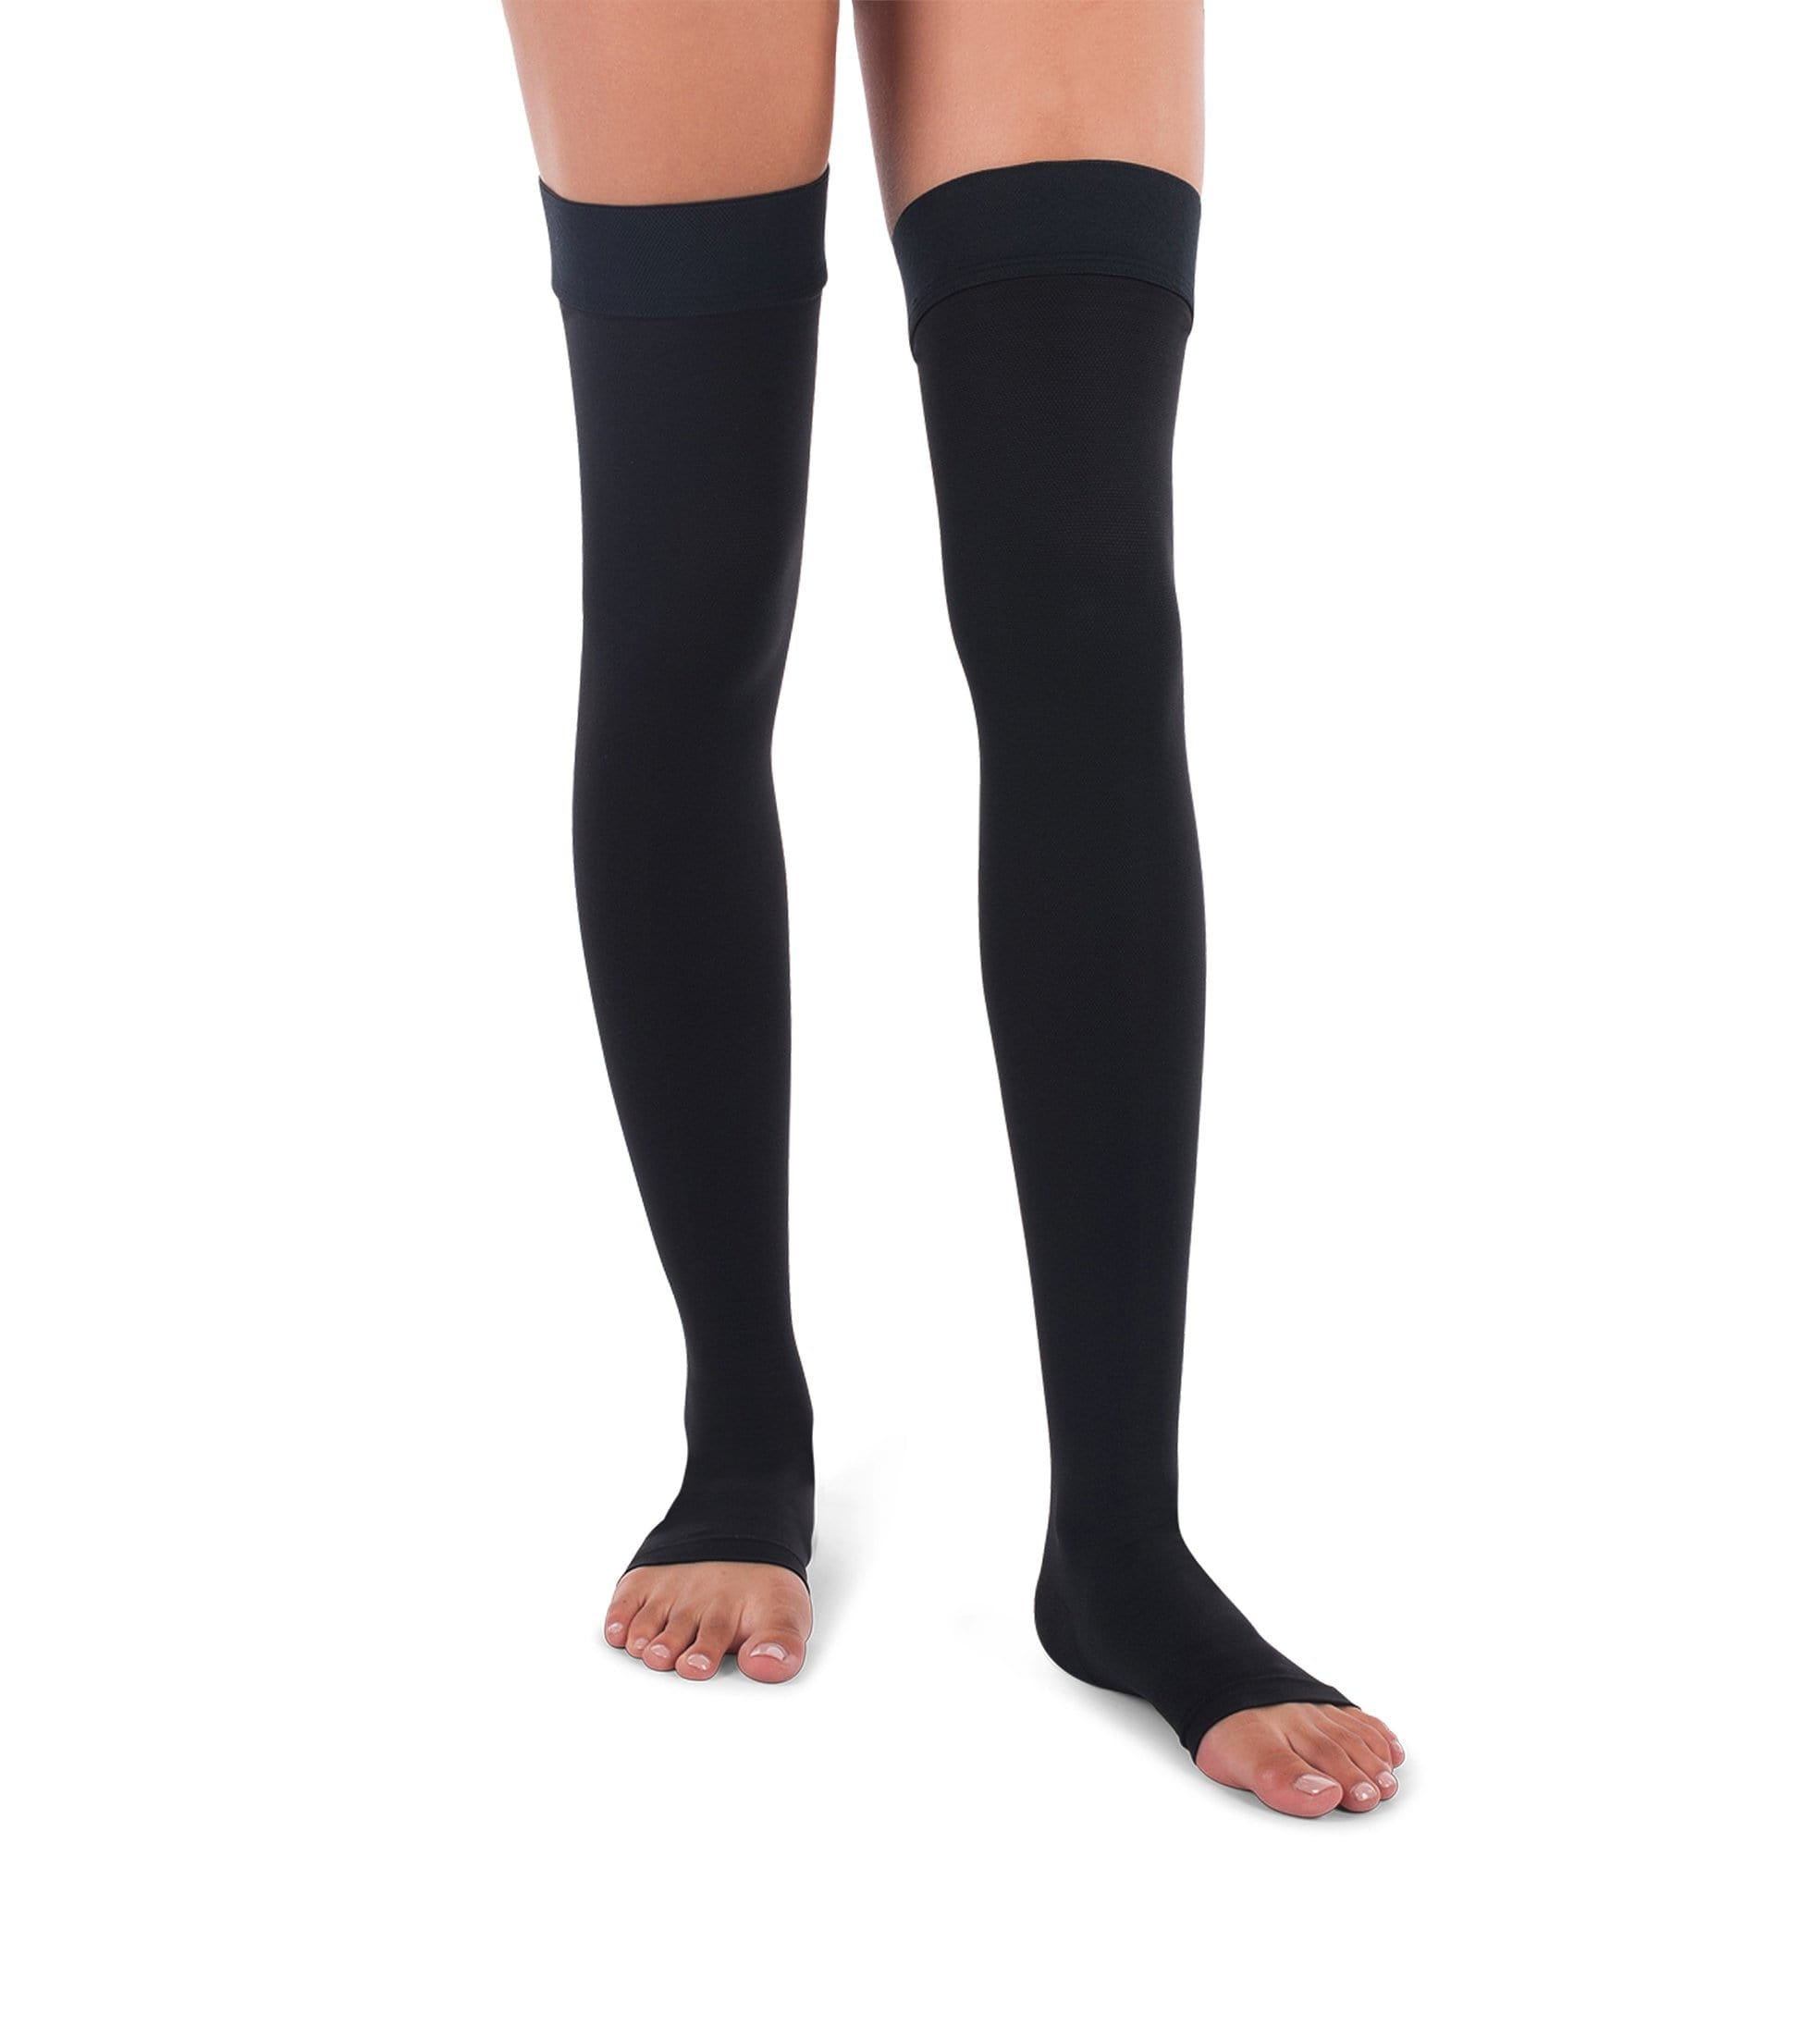 JOMI Thigh High Compression Stockings, 20-30mmHg Surgical Weight Open Toe 241 - Beige / Small